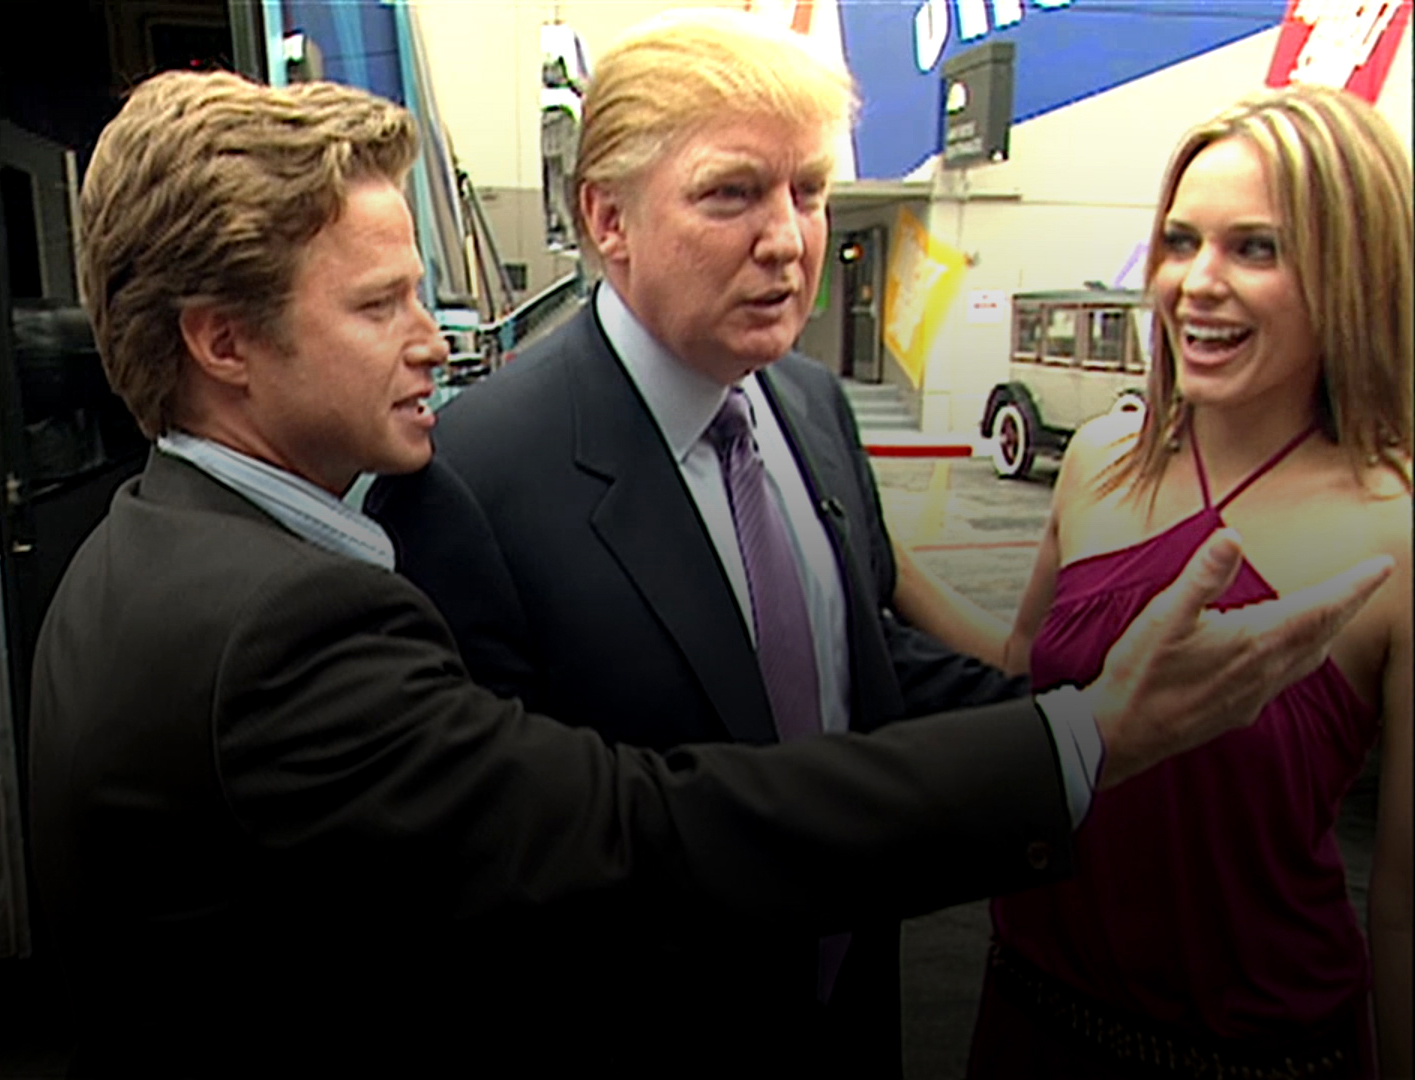 A still from the 2005 video featuring Donald Trump with Access Hollywood host Billy Bush, and 'Days of Our Lives' with actress Arianne Zucker, which revealed the now-infamous 'grab them by the pussy' comment. (Credit: The Washington Post via Getty Images)